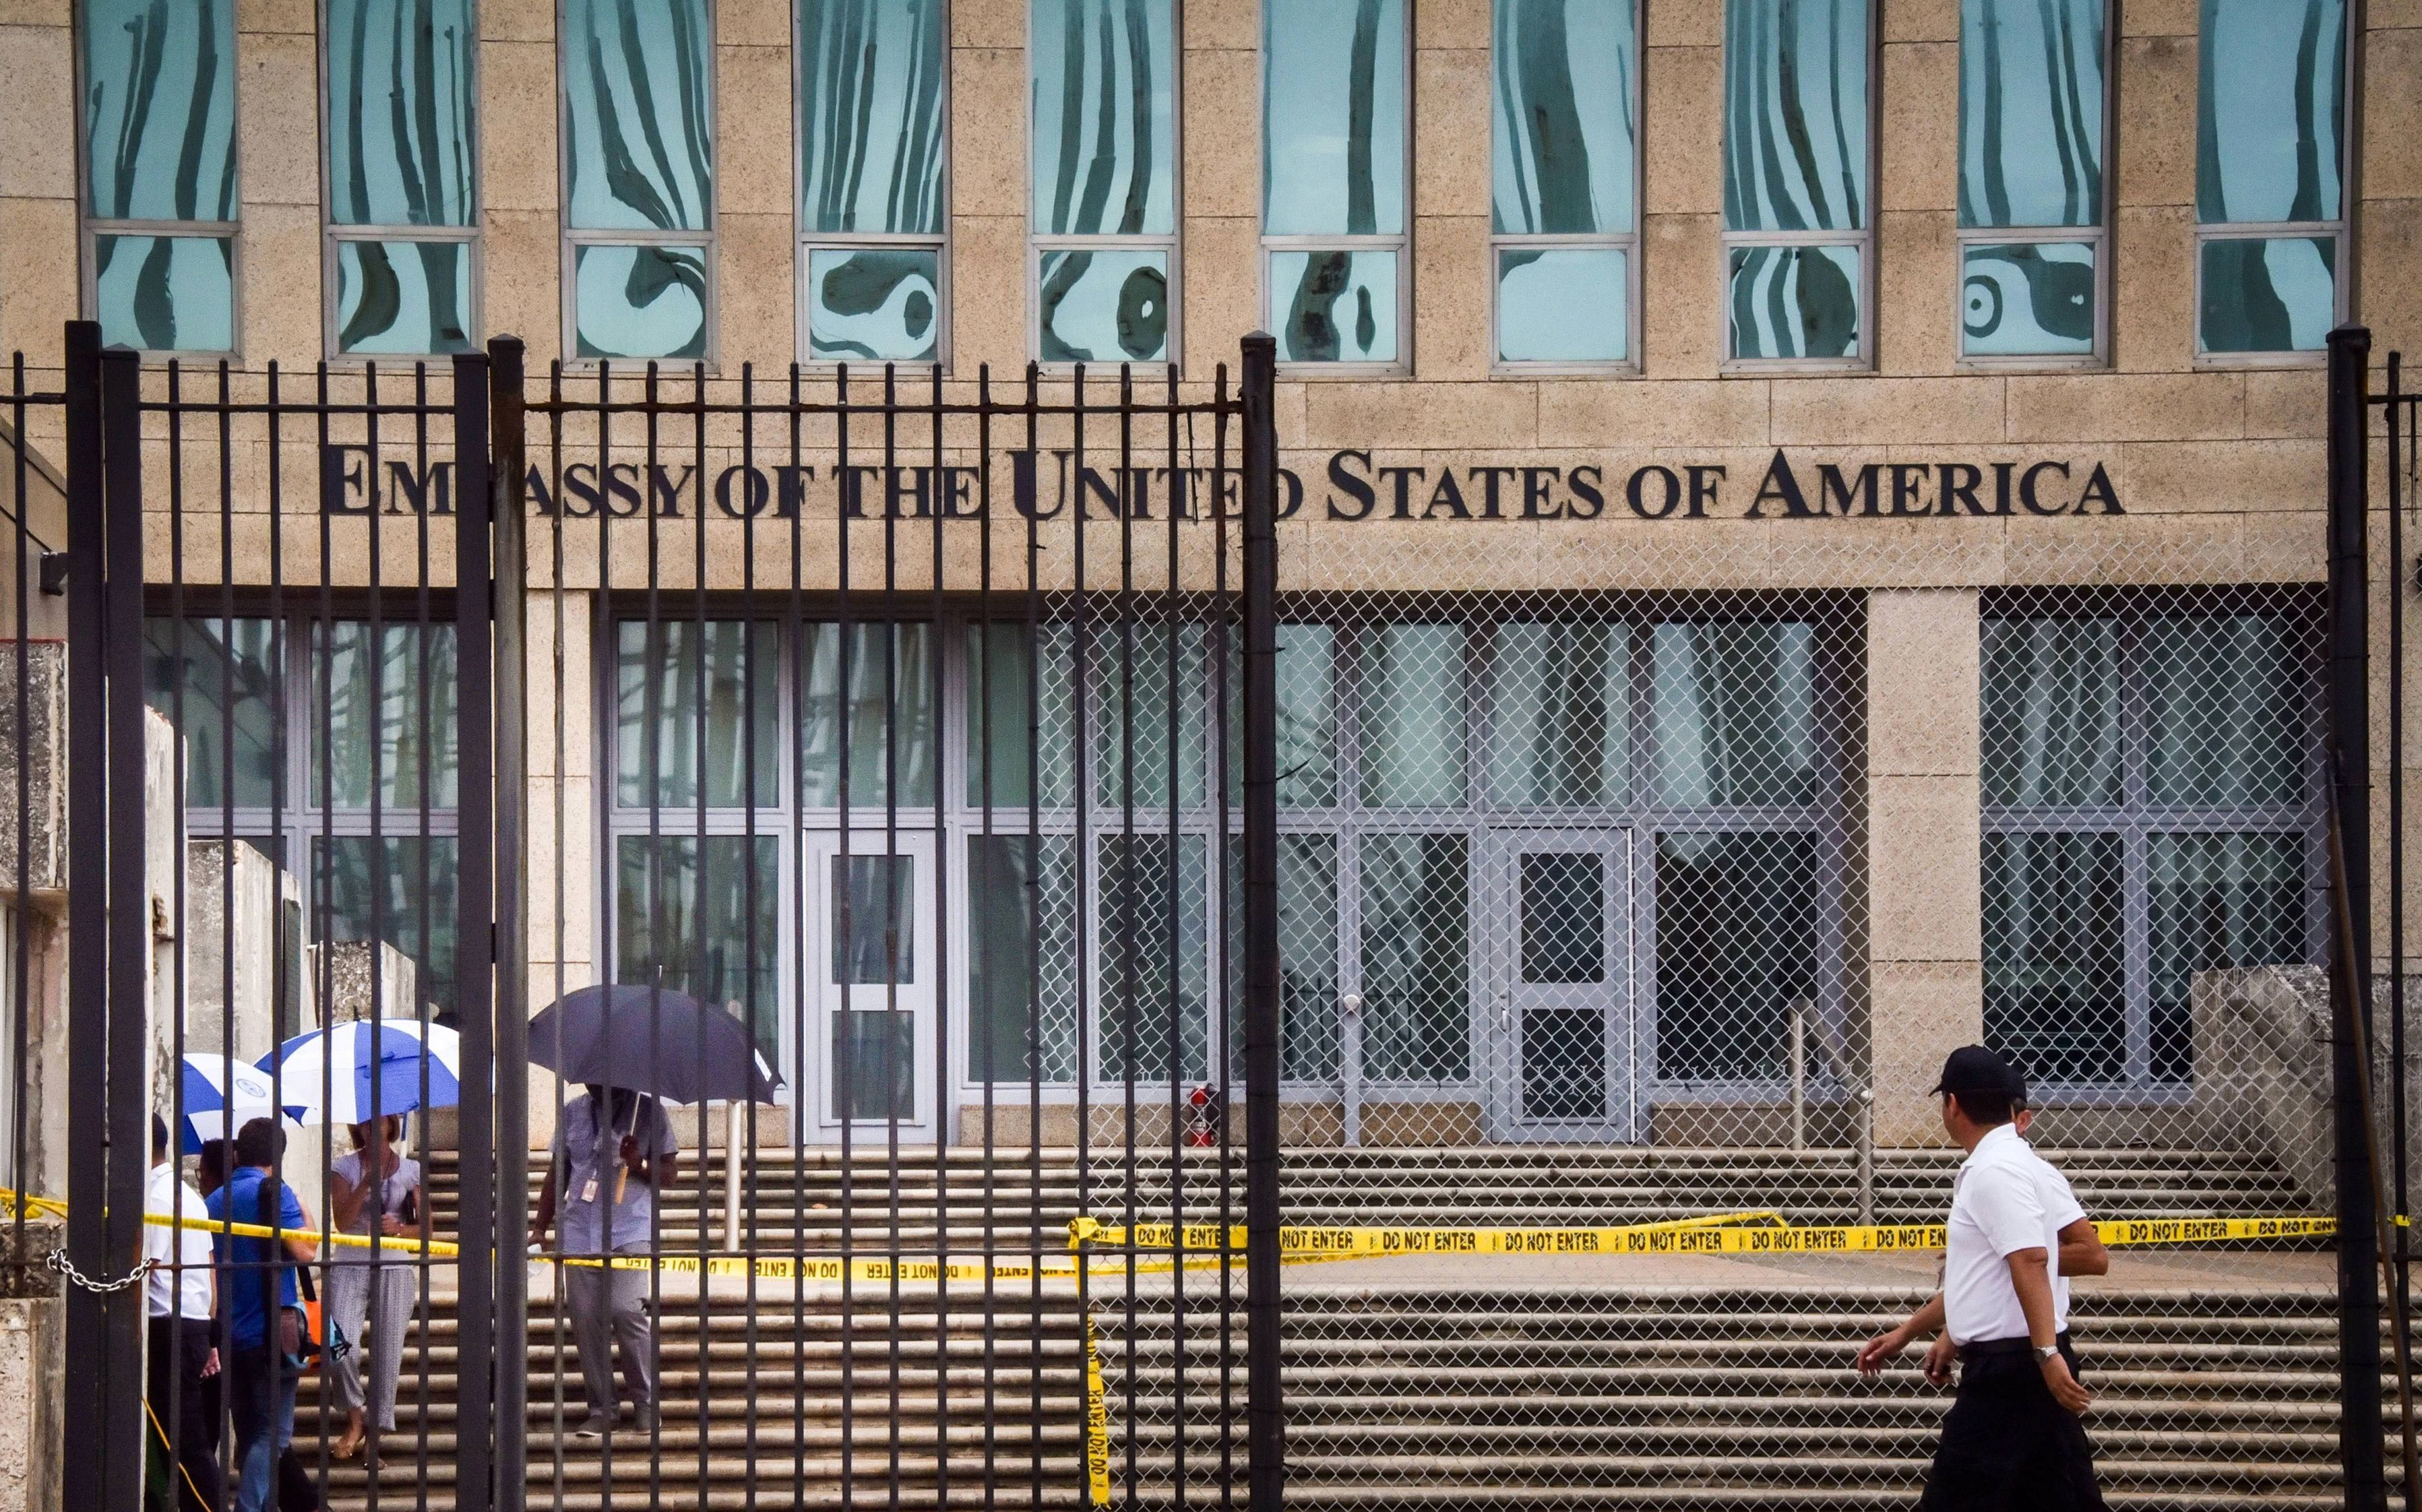 Microwave weapons suspected in United States  embassy ailments